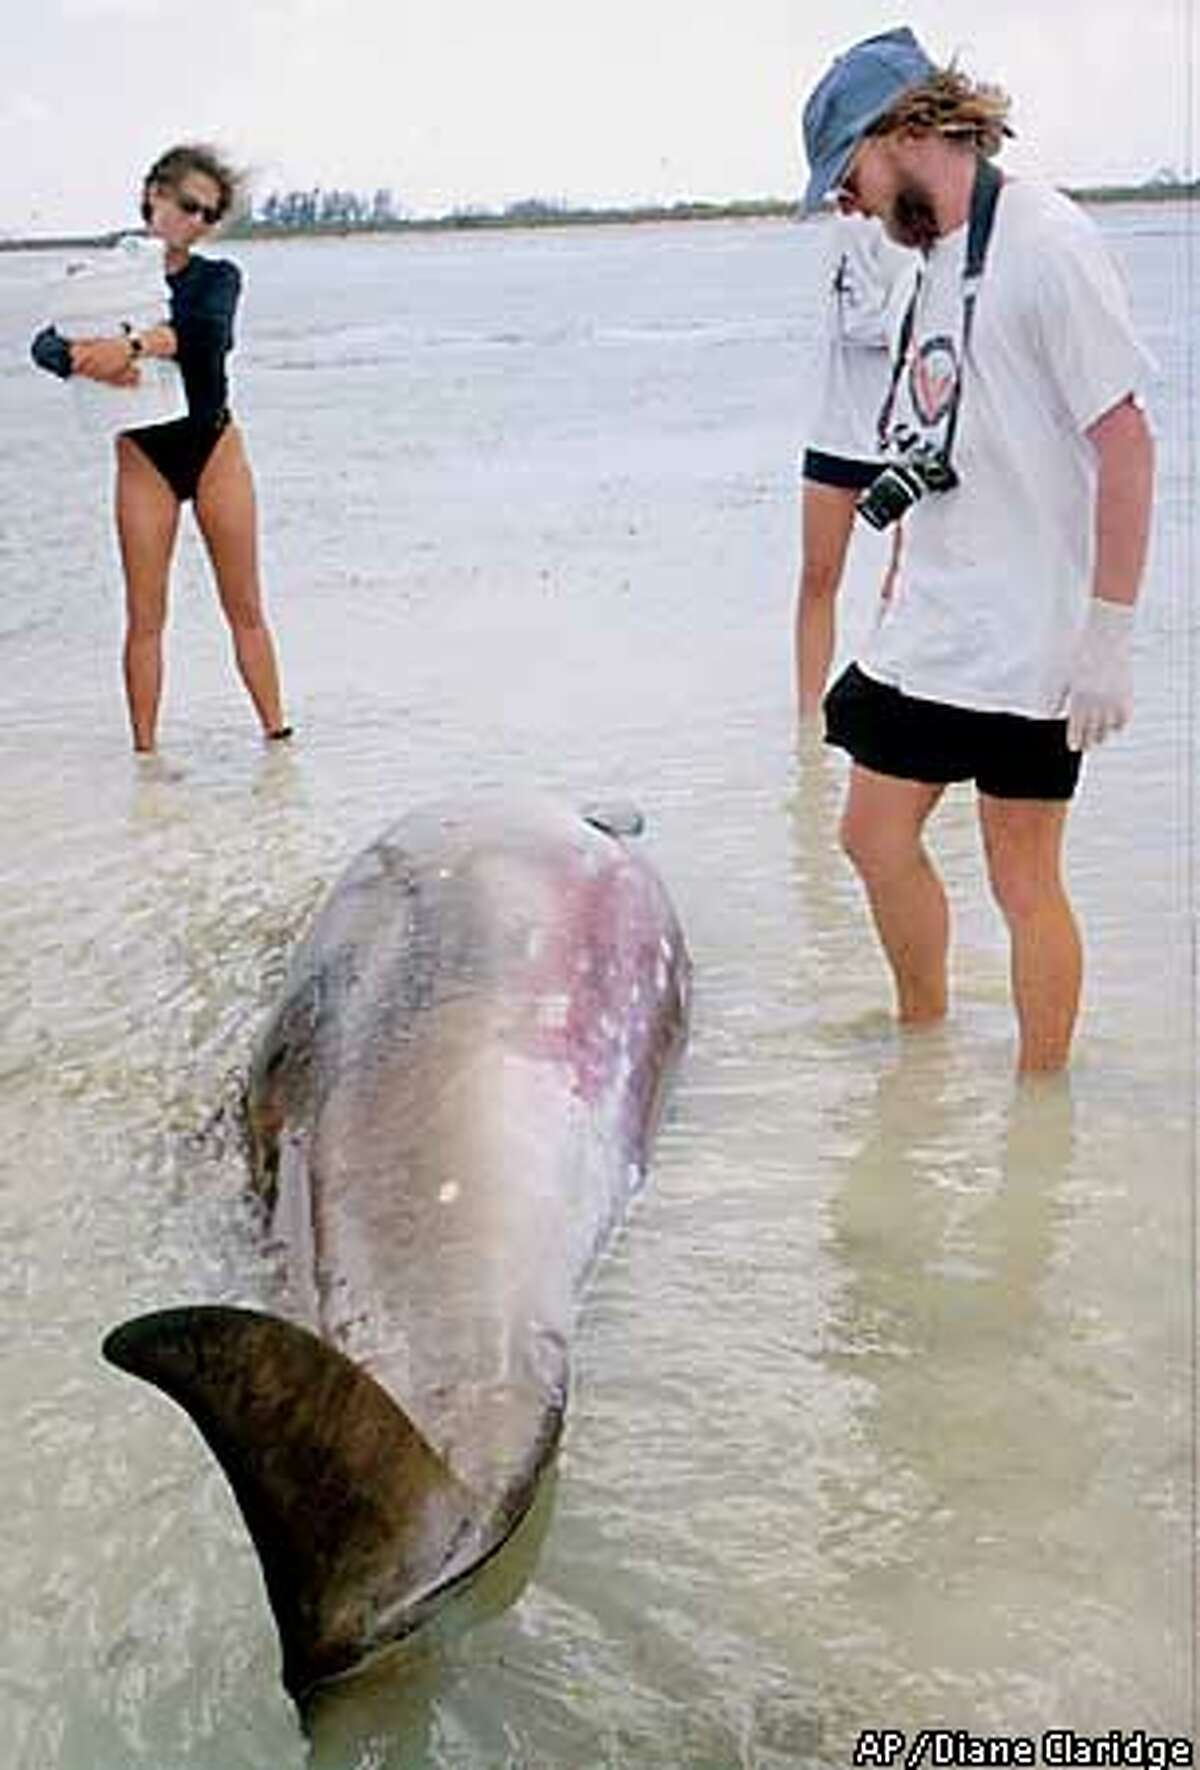 David Ellifrit, of the Center for Whale Research, right, looks at a dead whale after the whale was beached on Abaco Island in the Bahamas March 15, 2000. Autopsies of whales that beached in the Bahamas suggest a possible link between U.S. Navy anti-submarine sonar and ear hemorrhages that disoriented the whales, according to a leading expert hired by the National Marine Fisheries Service. (AP Photo/Diane Claridge)